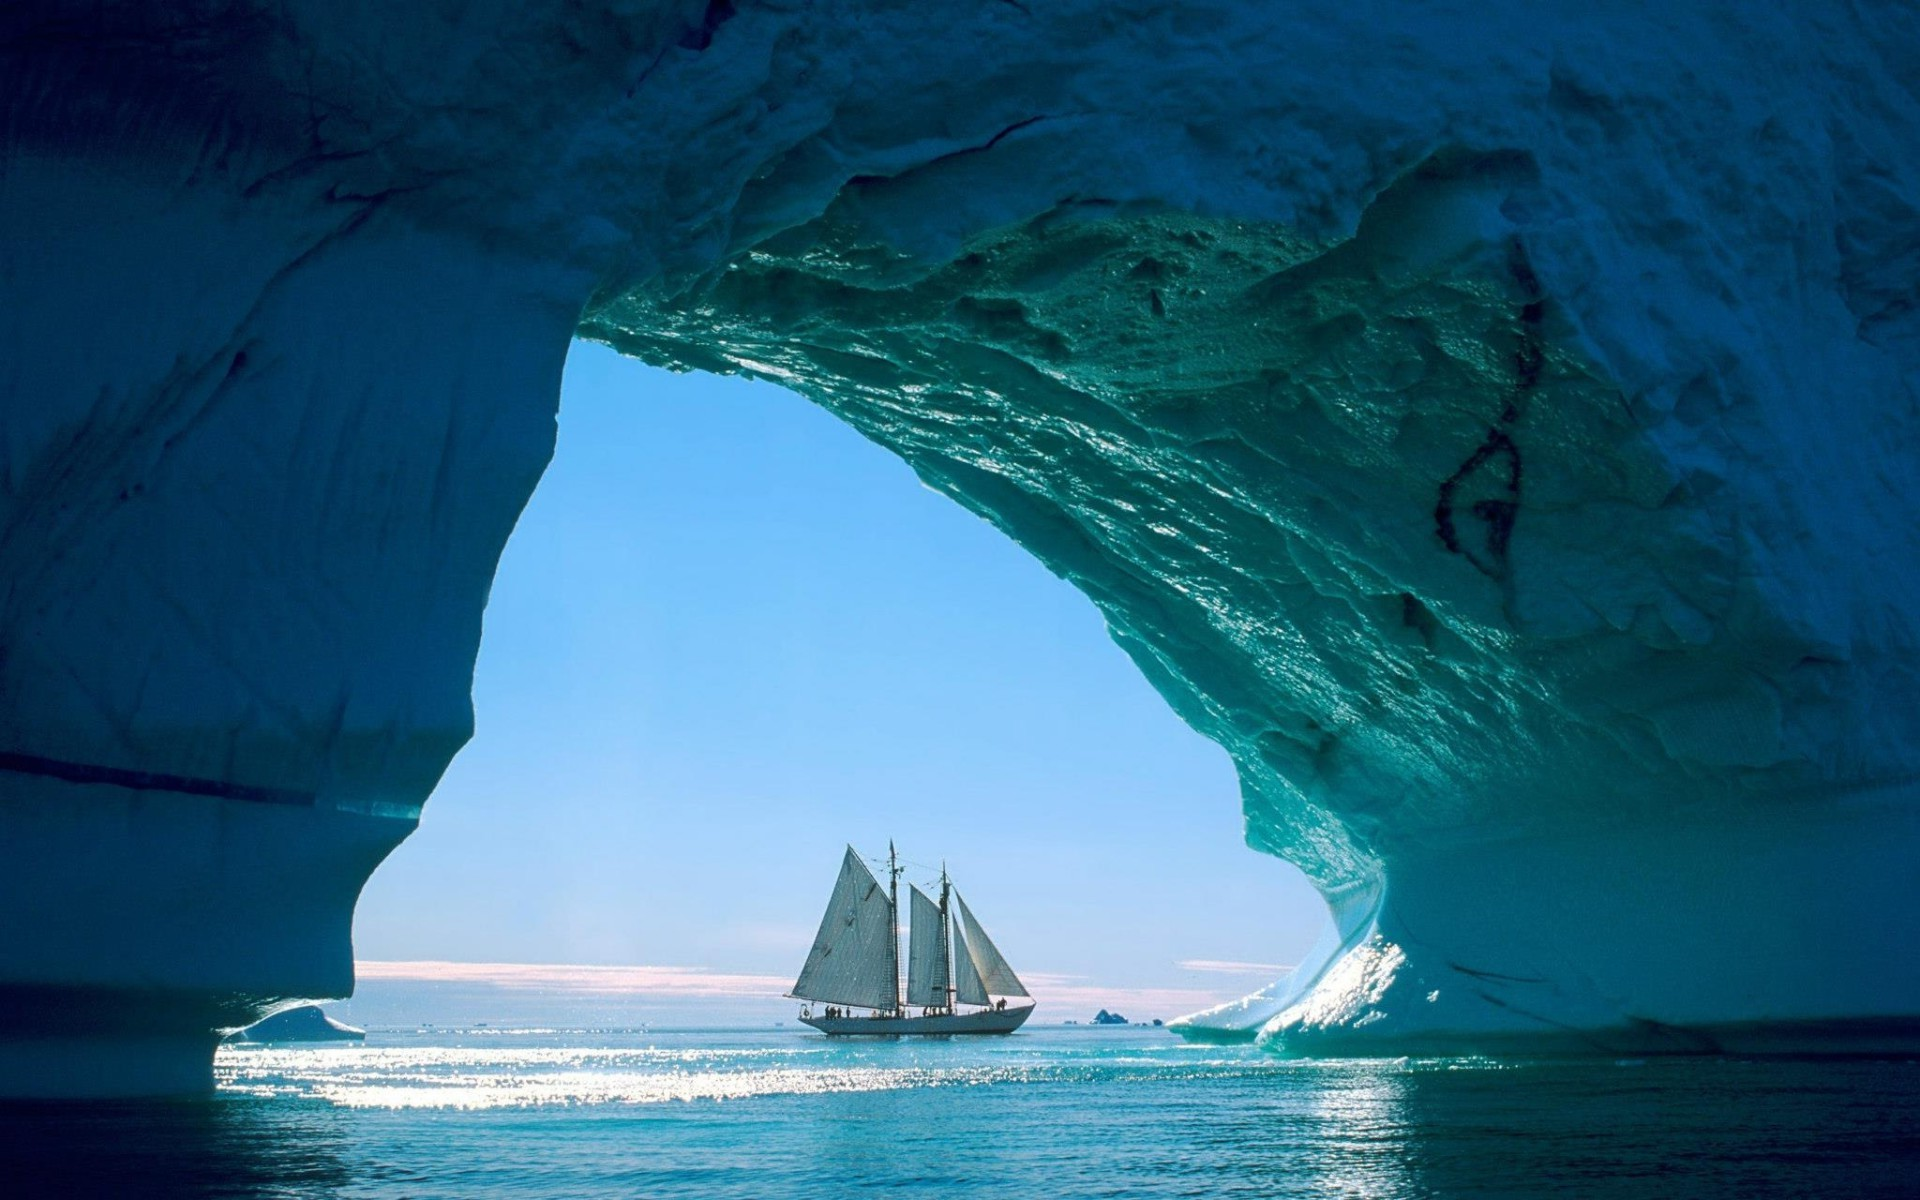 winter water sea ocean nature travel iceberg ice snow outdoors landscape sky